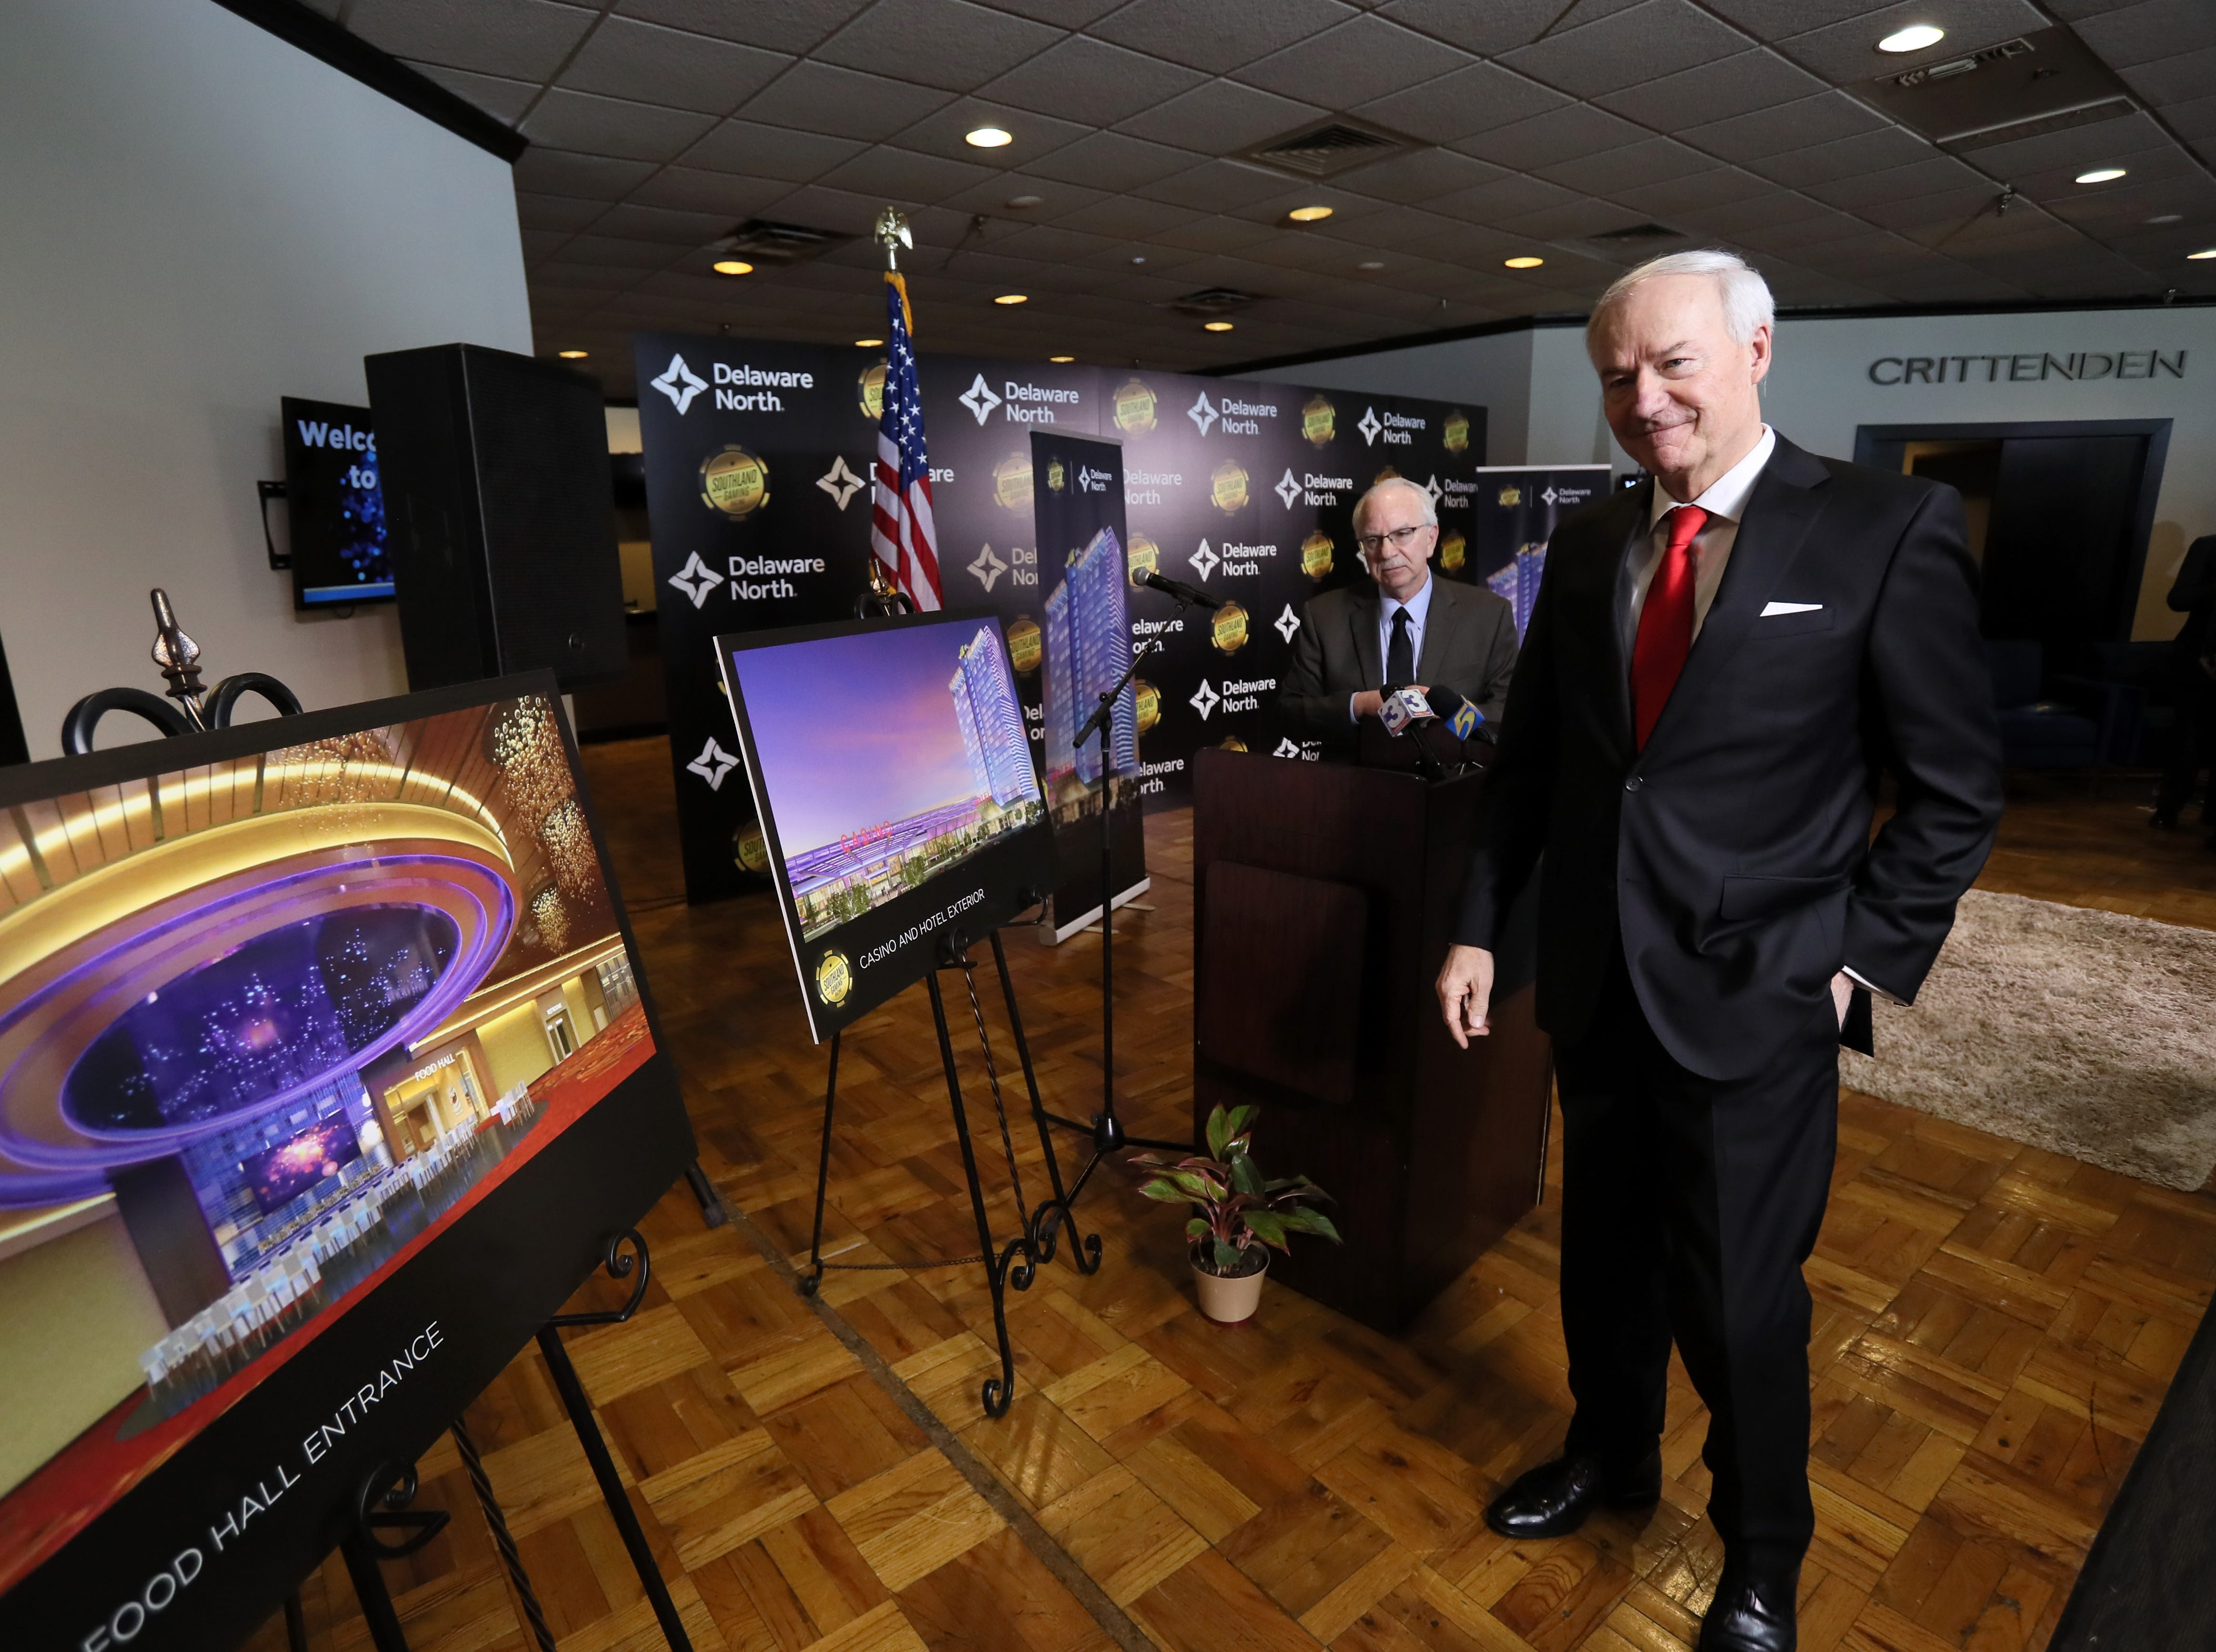 Arkansas Gov. Asa Hutchinson previews the designs of hospitality company Delaware North as they make an announcement of their $250 million expansion of Southland Gaming & Racing in West Memphis on Thursday, Jan. 24, 2019.